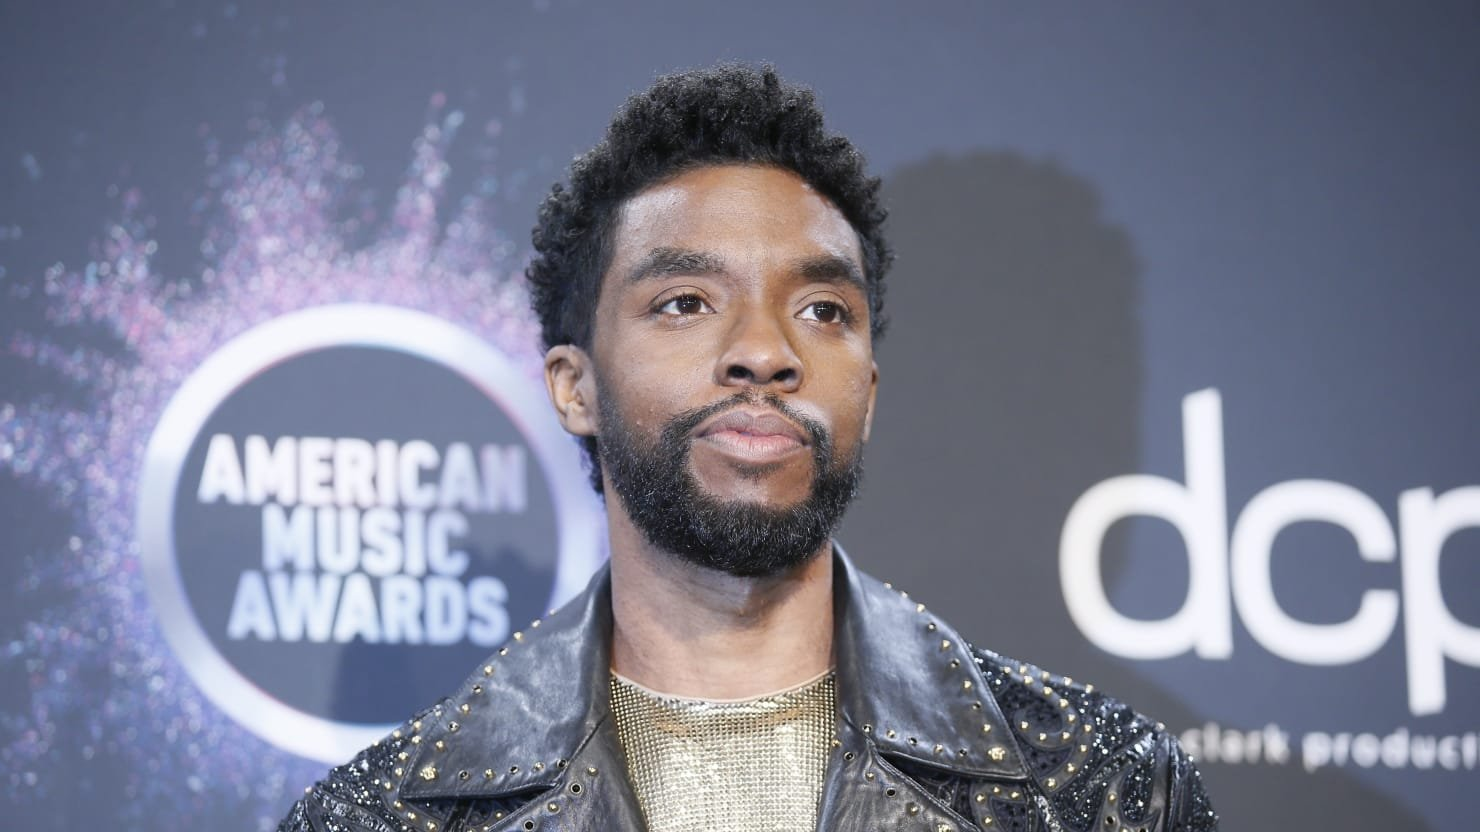 'Black Panther' Star Chadwick Boseman Dies at 43 After Quietly Battling Colon Cancer for Years